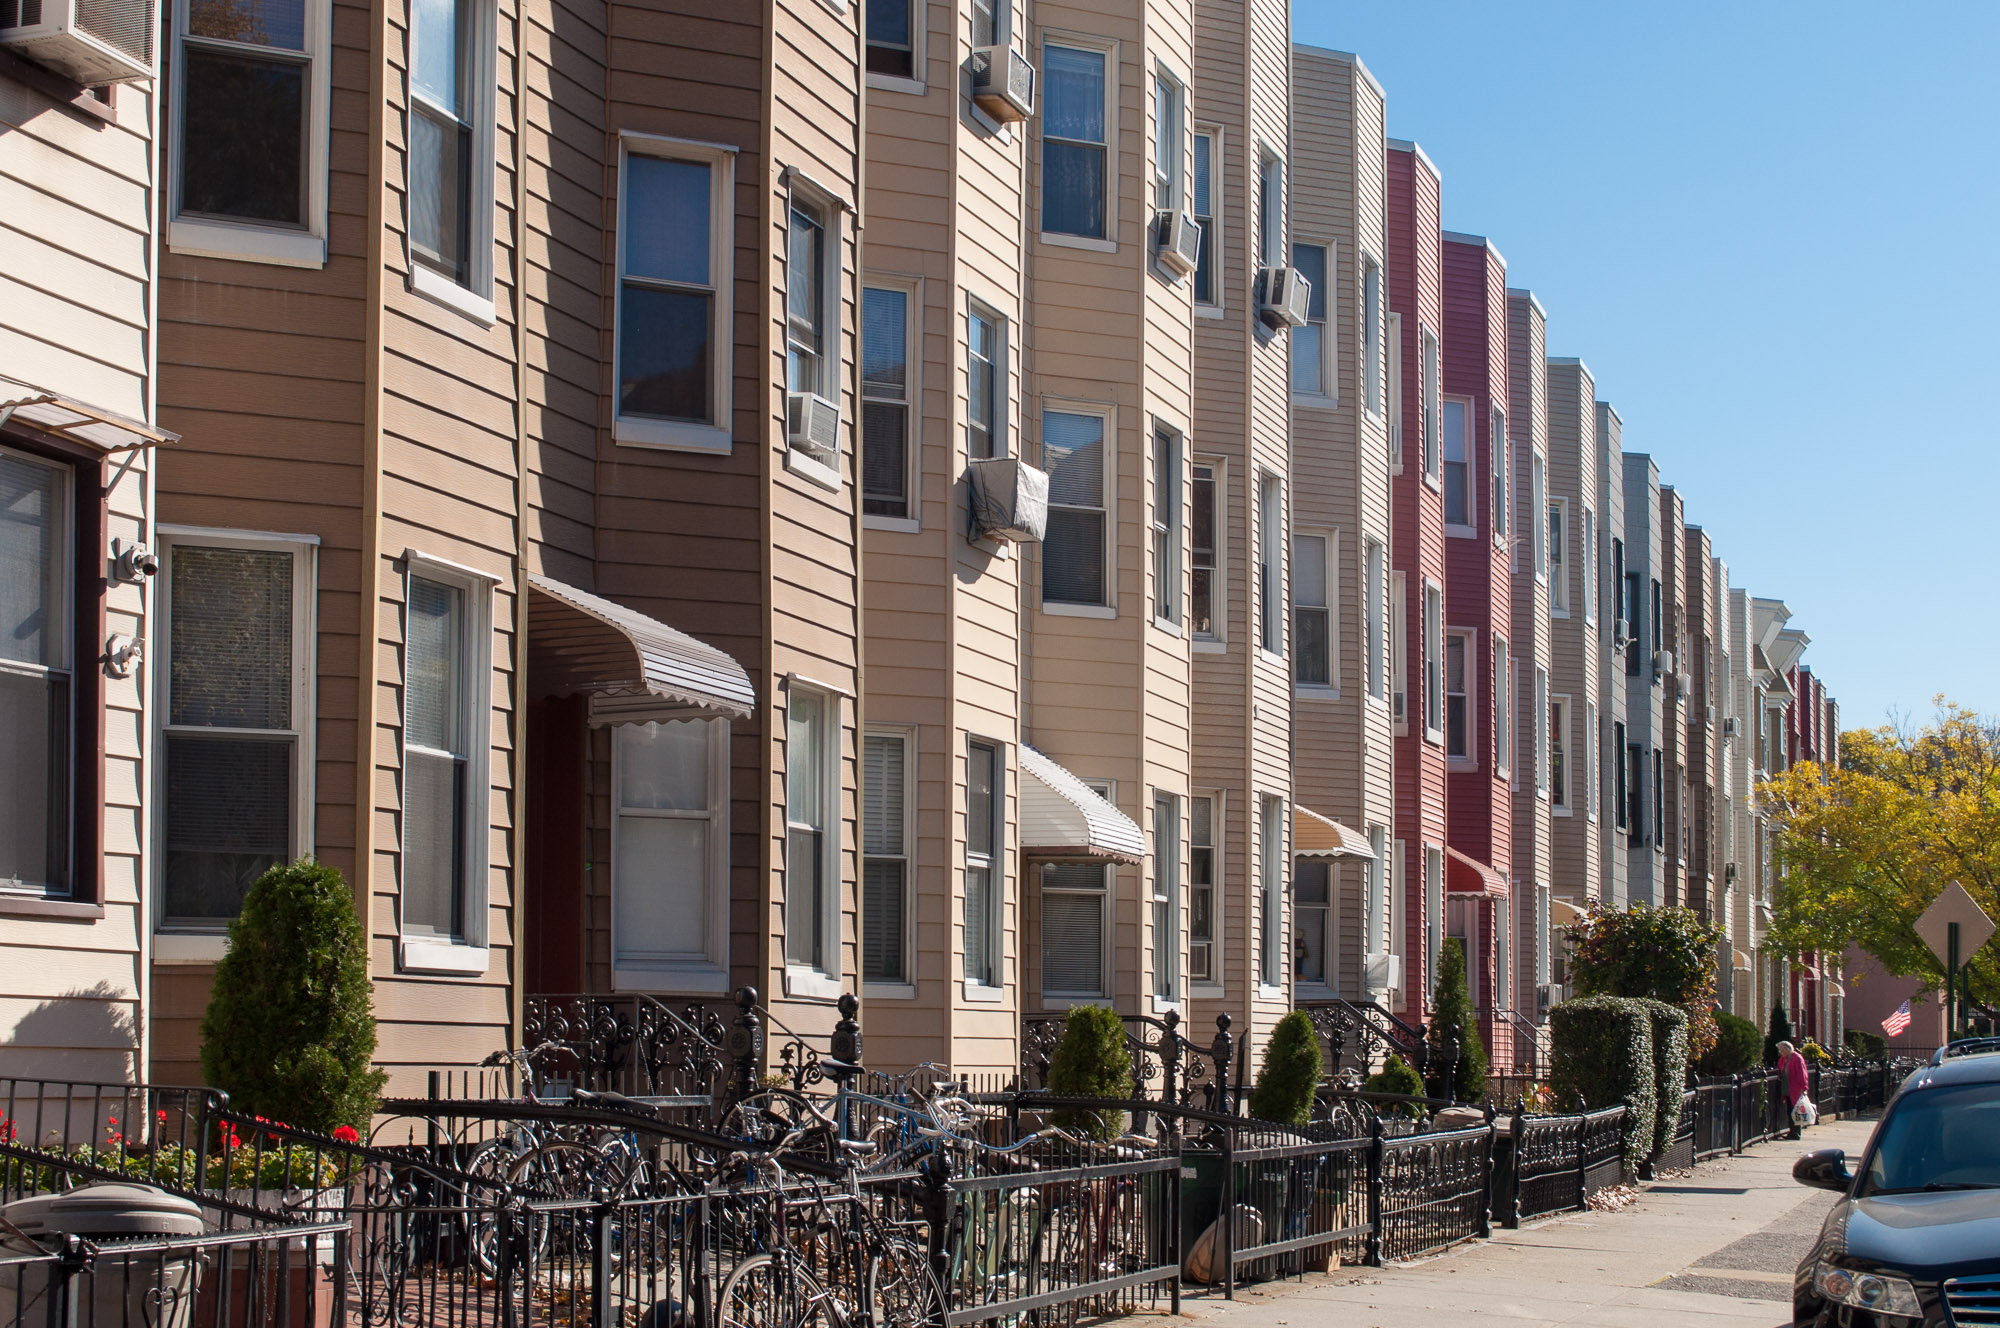 As the real estate industry prepares to reopen, New Yorkers may be looking for more spacious homes, like these three-story clapboard houses on a block in Greenpoint, Brooklyn.